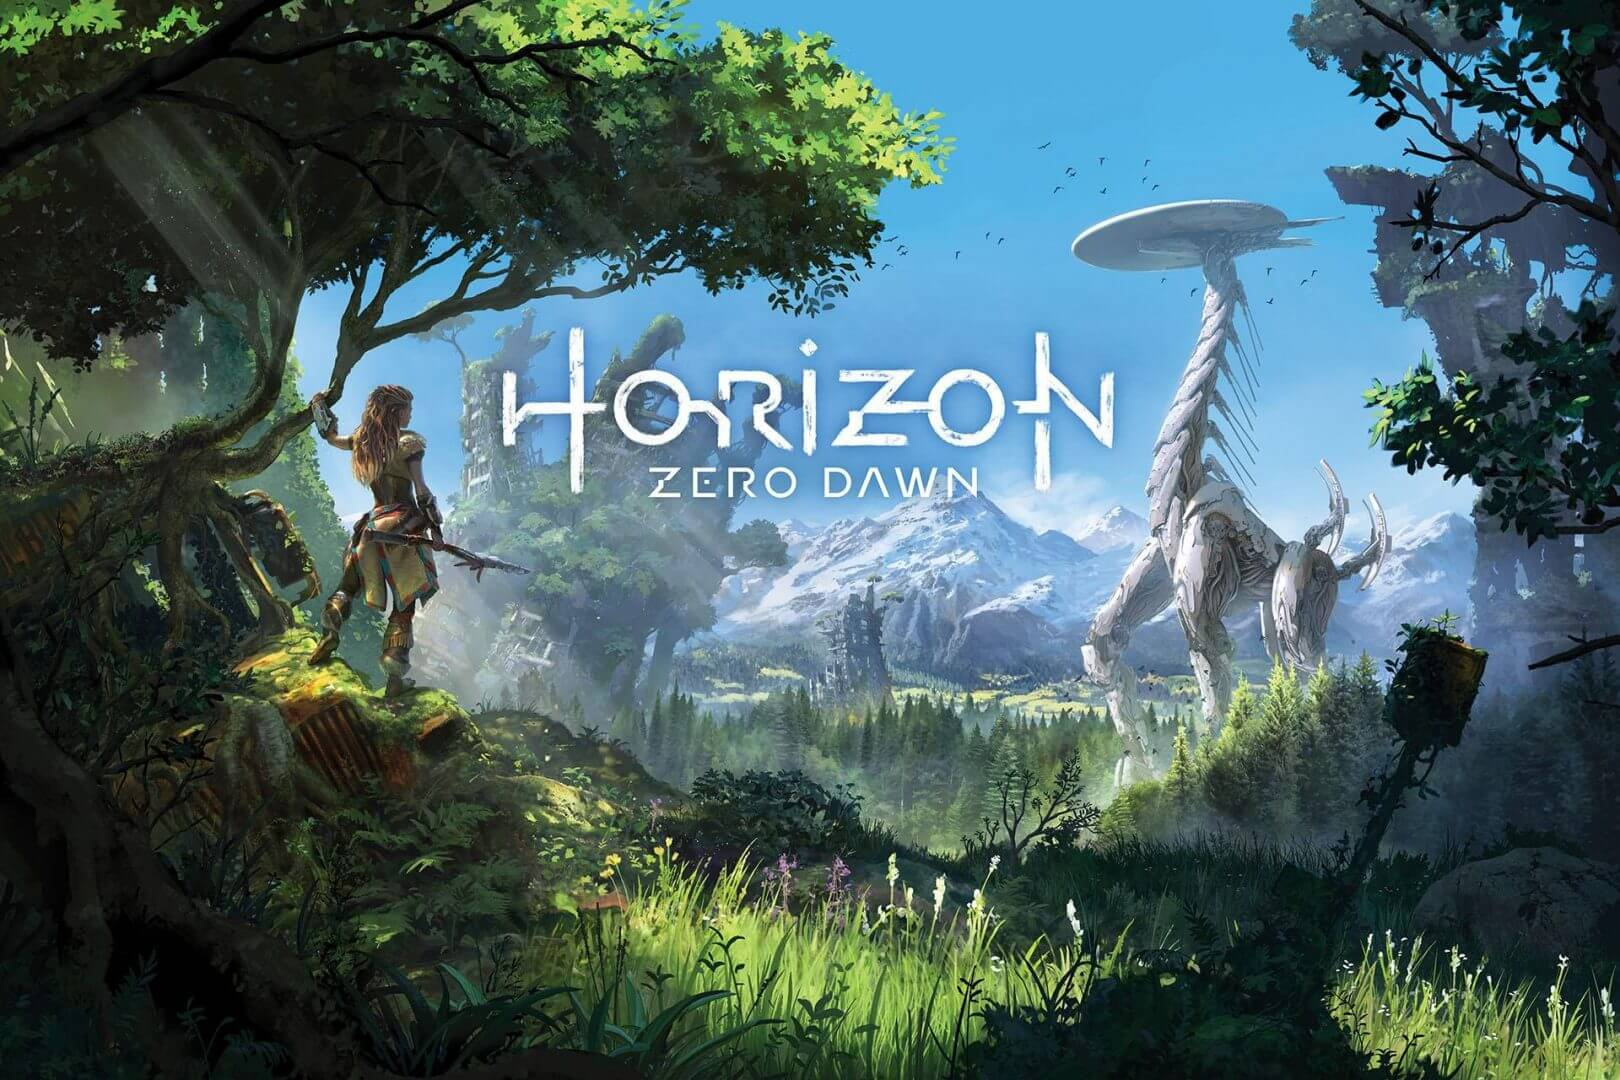 Horizon Zero Dawn Delayed to 2017, New Trailer Released